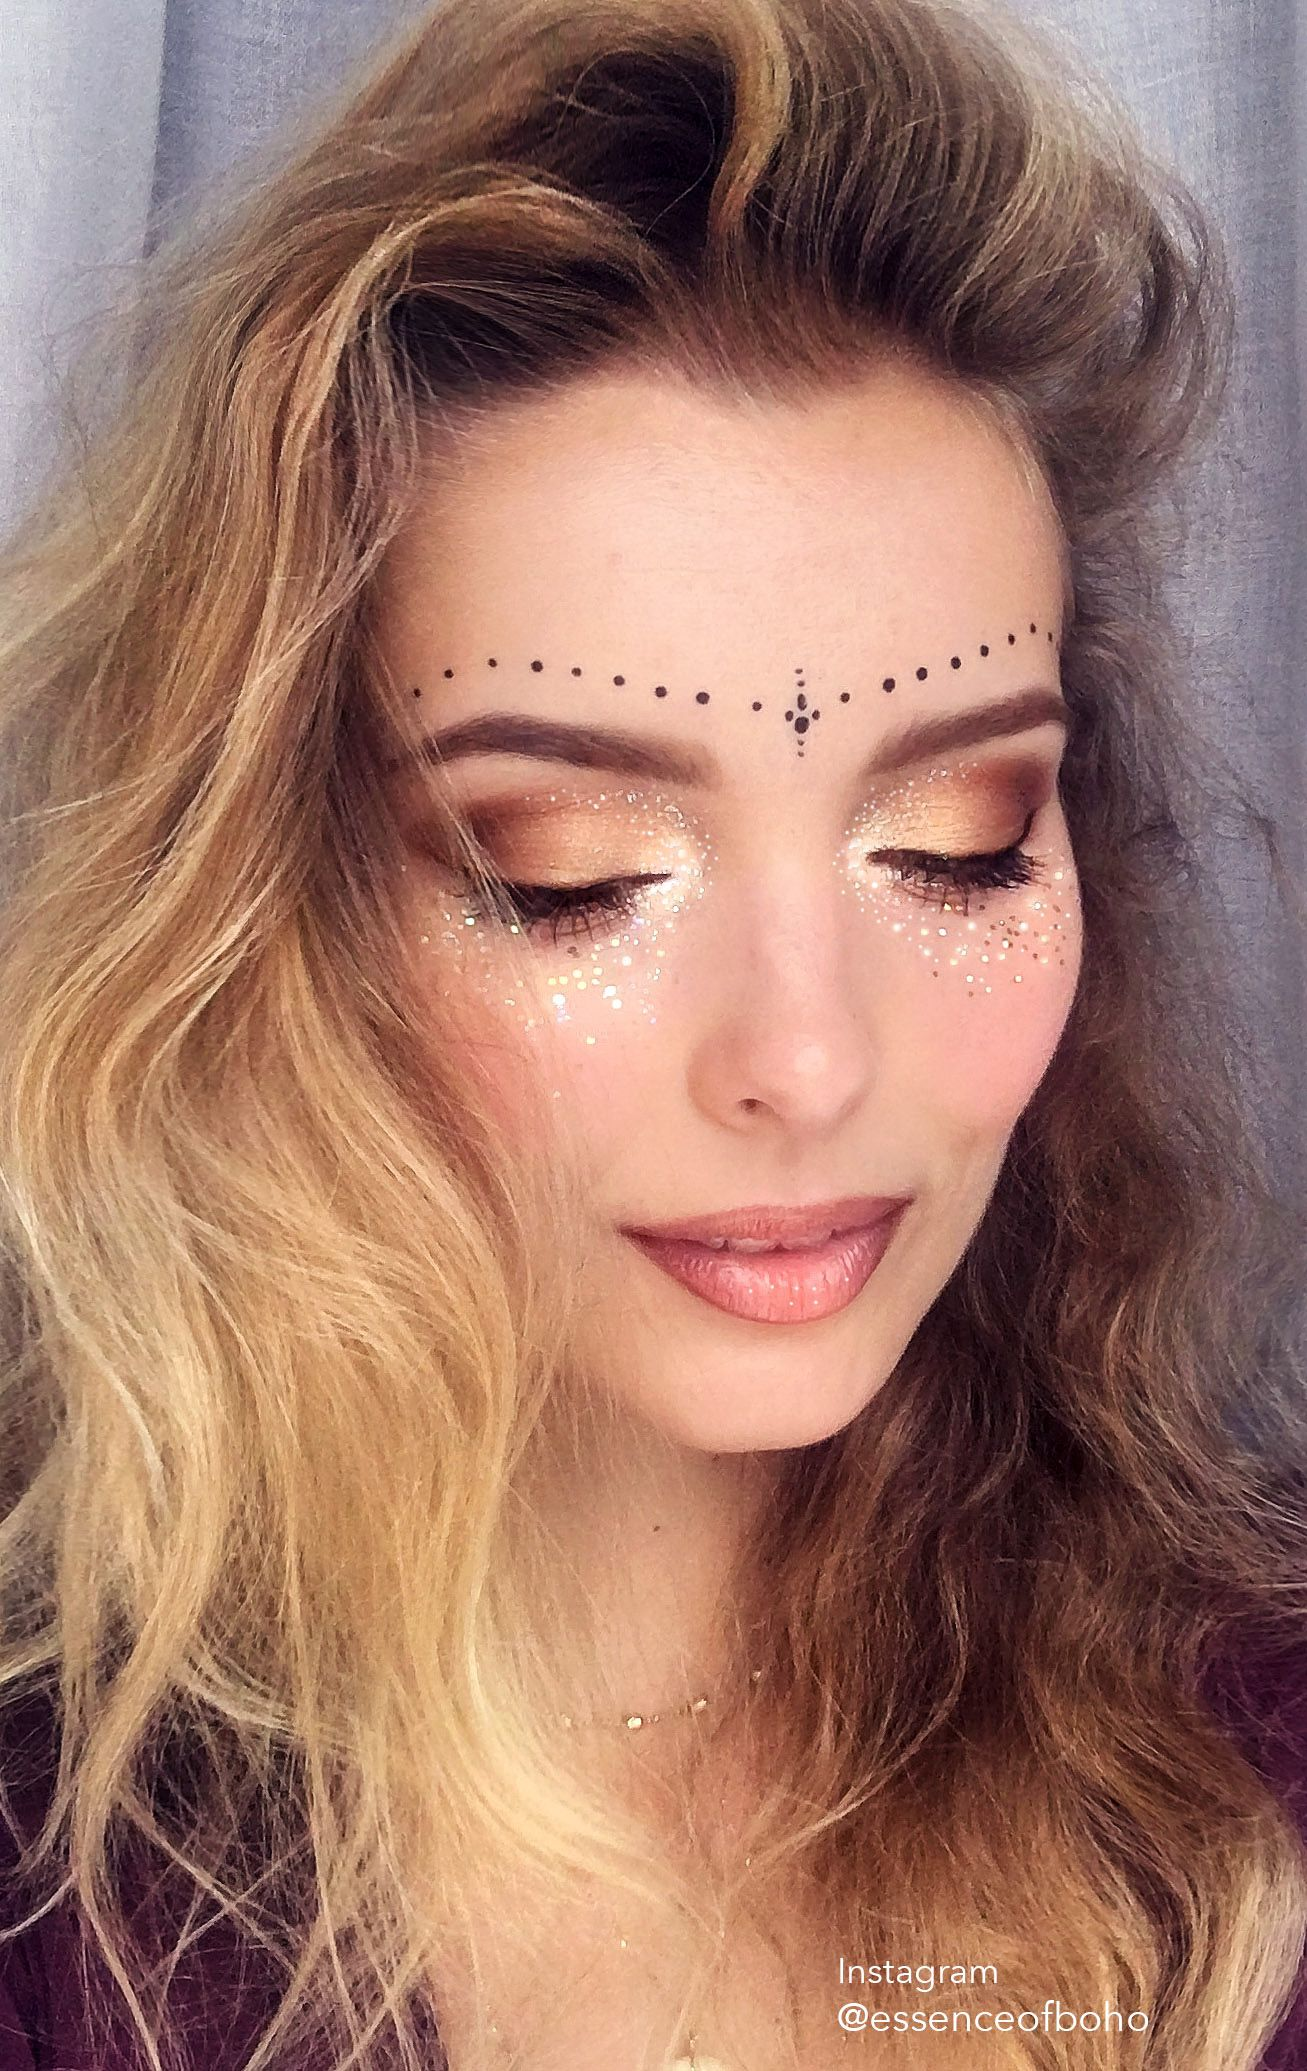 Photo of Festival Makeup 2017: Glitter Freckles